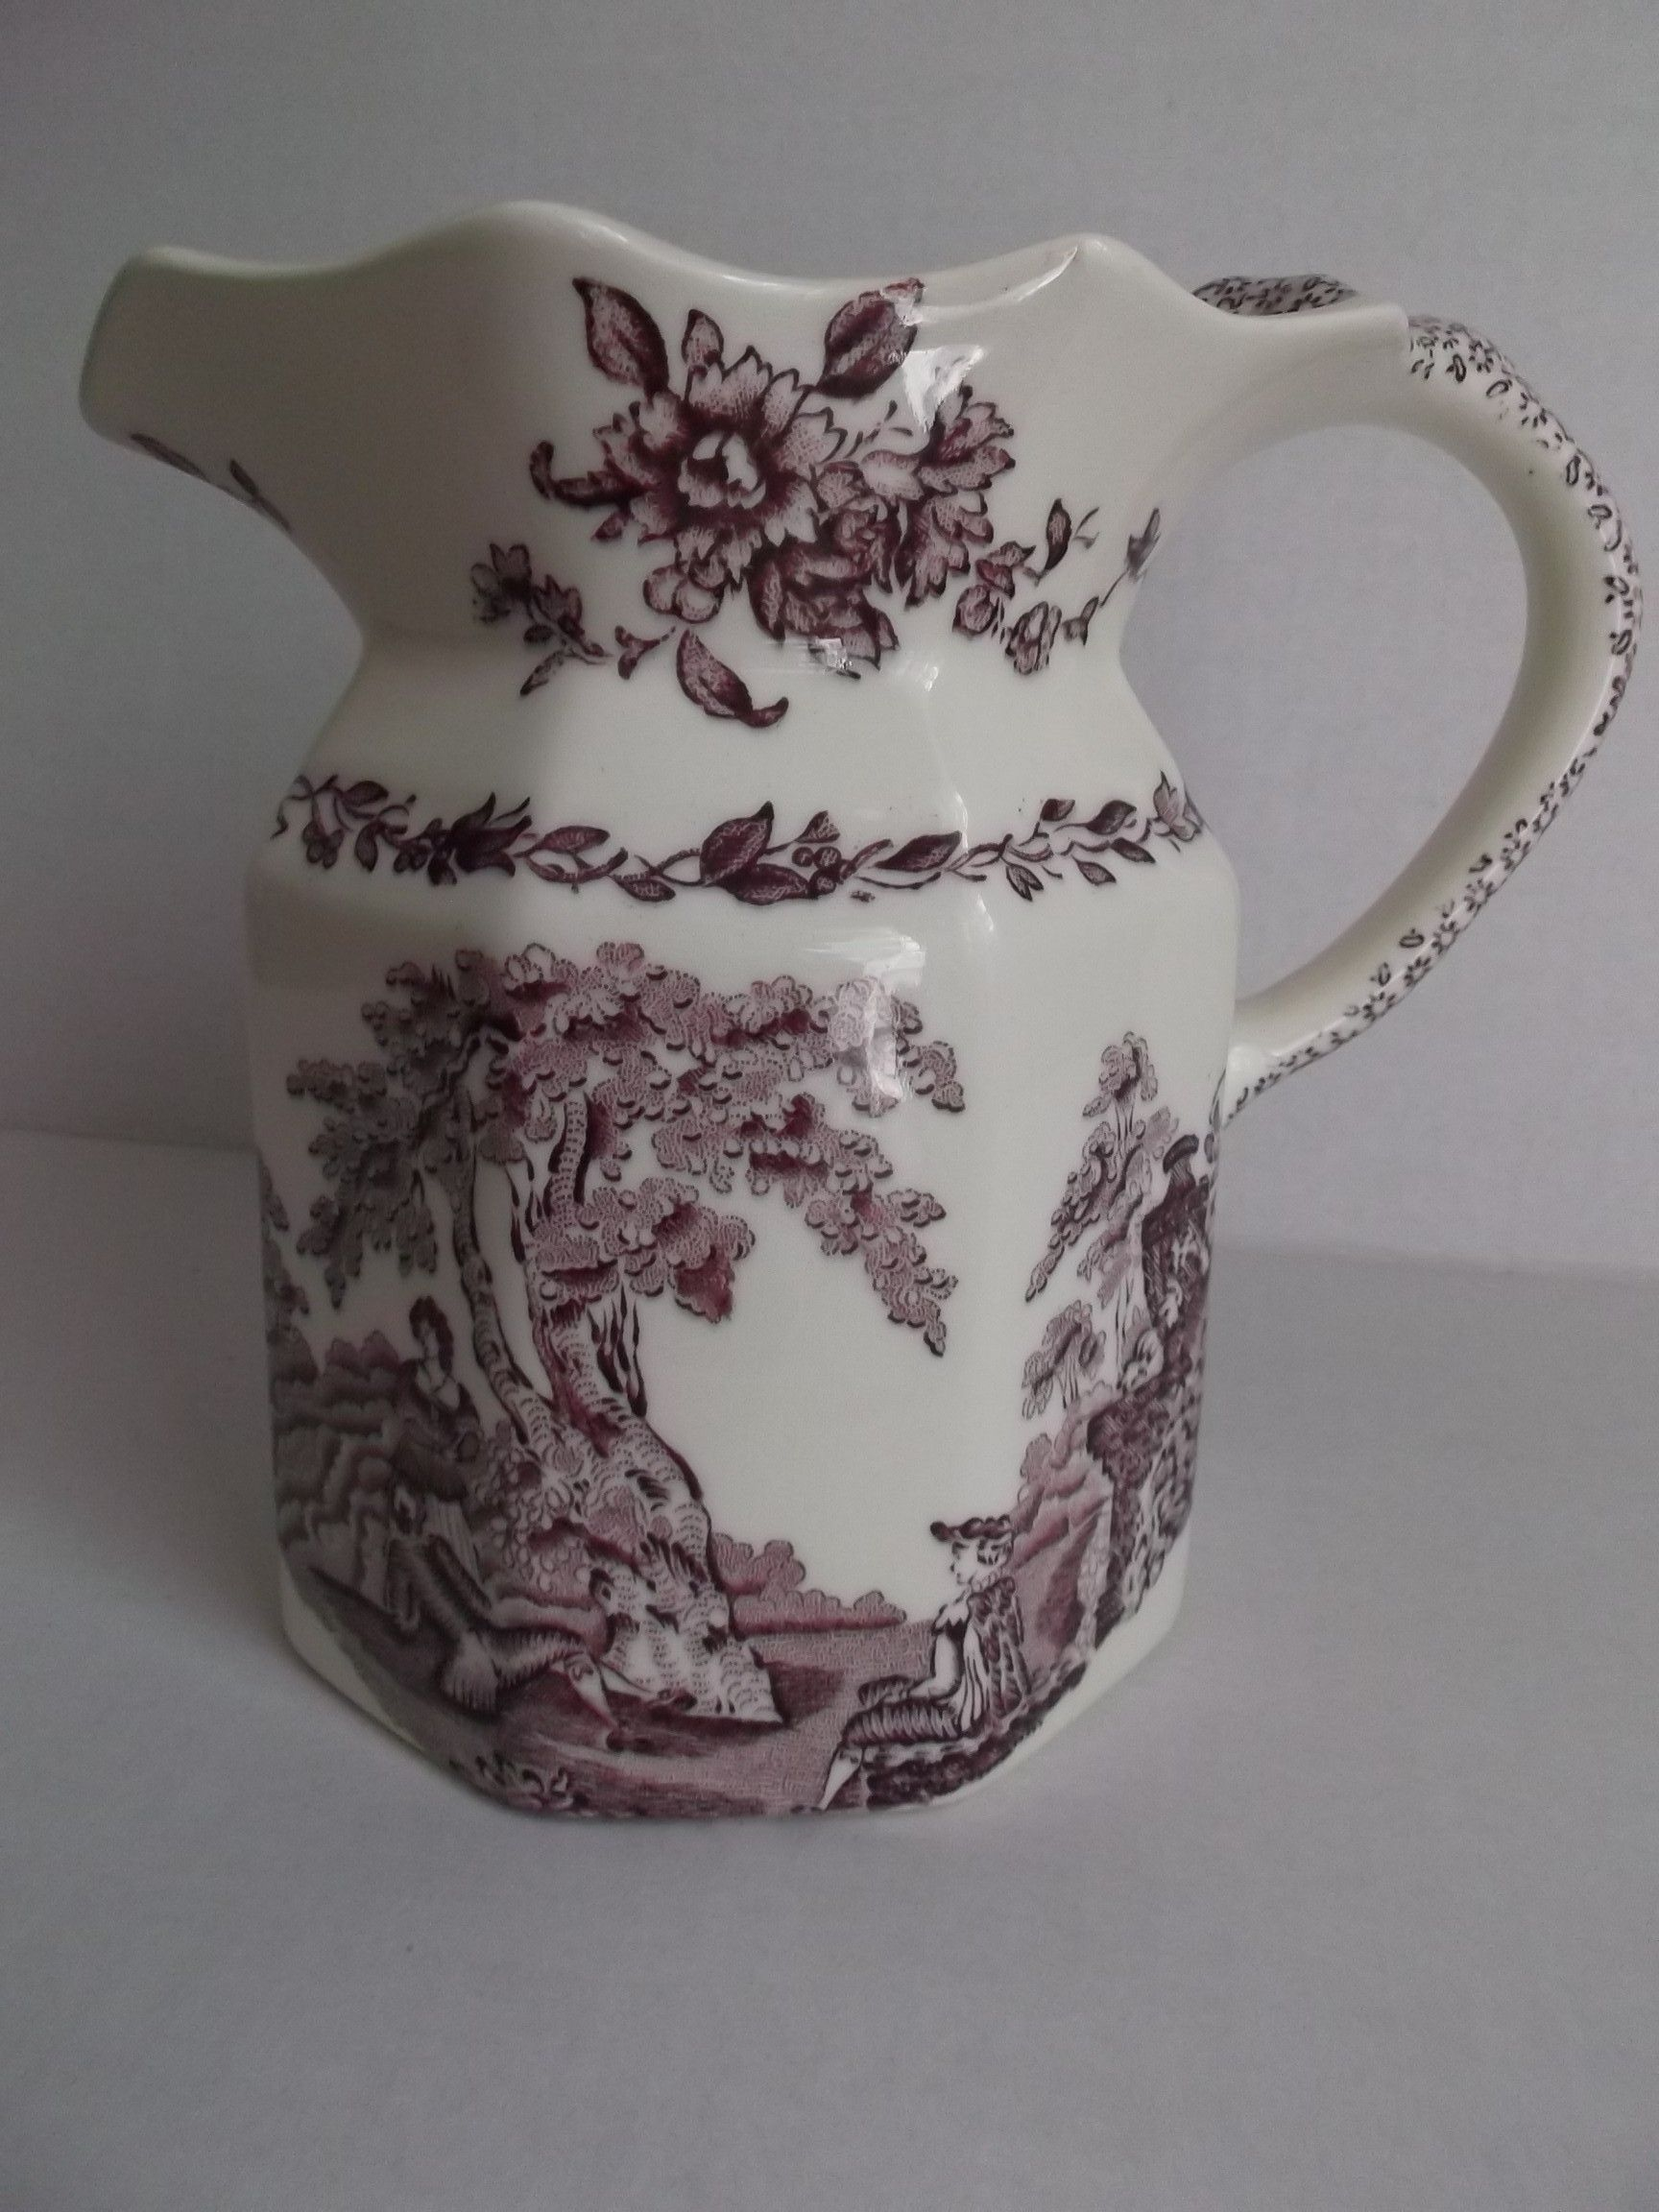 Masonu0027s Vintage Pitcher Watteau Mulberry Lady Men Trees Flowers & Masonu0027s Vintage Pitcher Watteau Mulberry Lady Men Trees Flowers ...